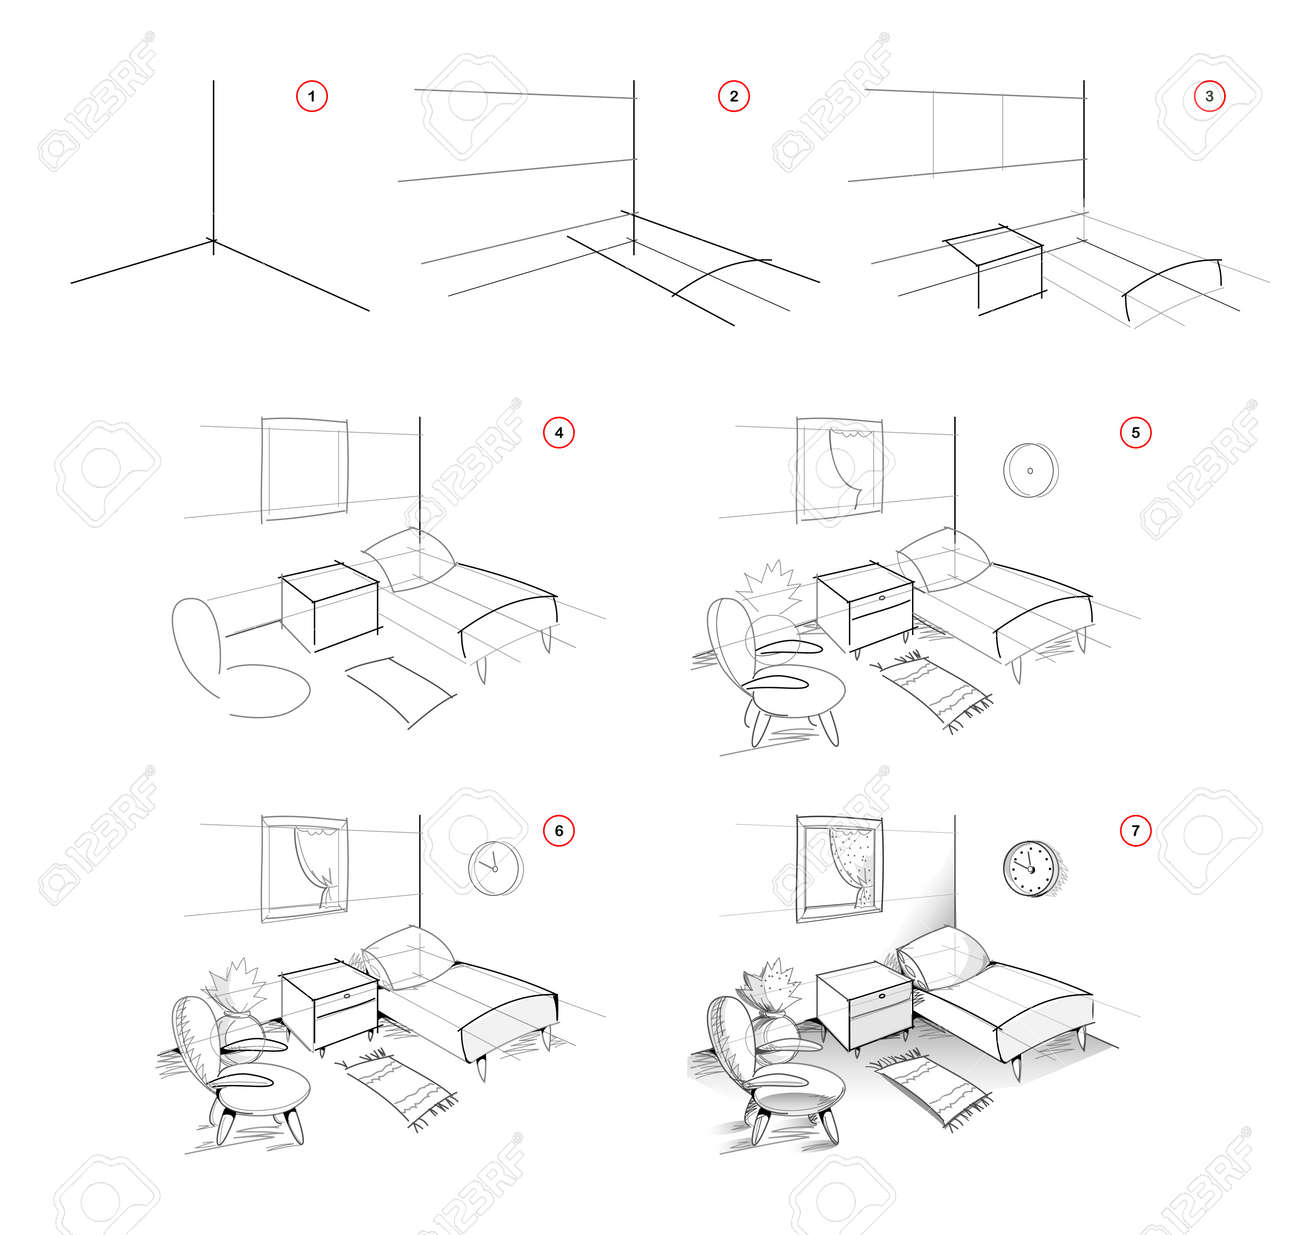 Page shows how to learn to draw sketch of interior bedroom. Creation step by step pencil drawing. Educational page for artists. Textbook for developing artistic skills. Online education. - 170073892